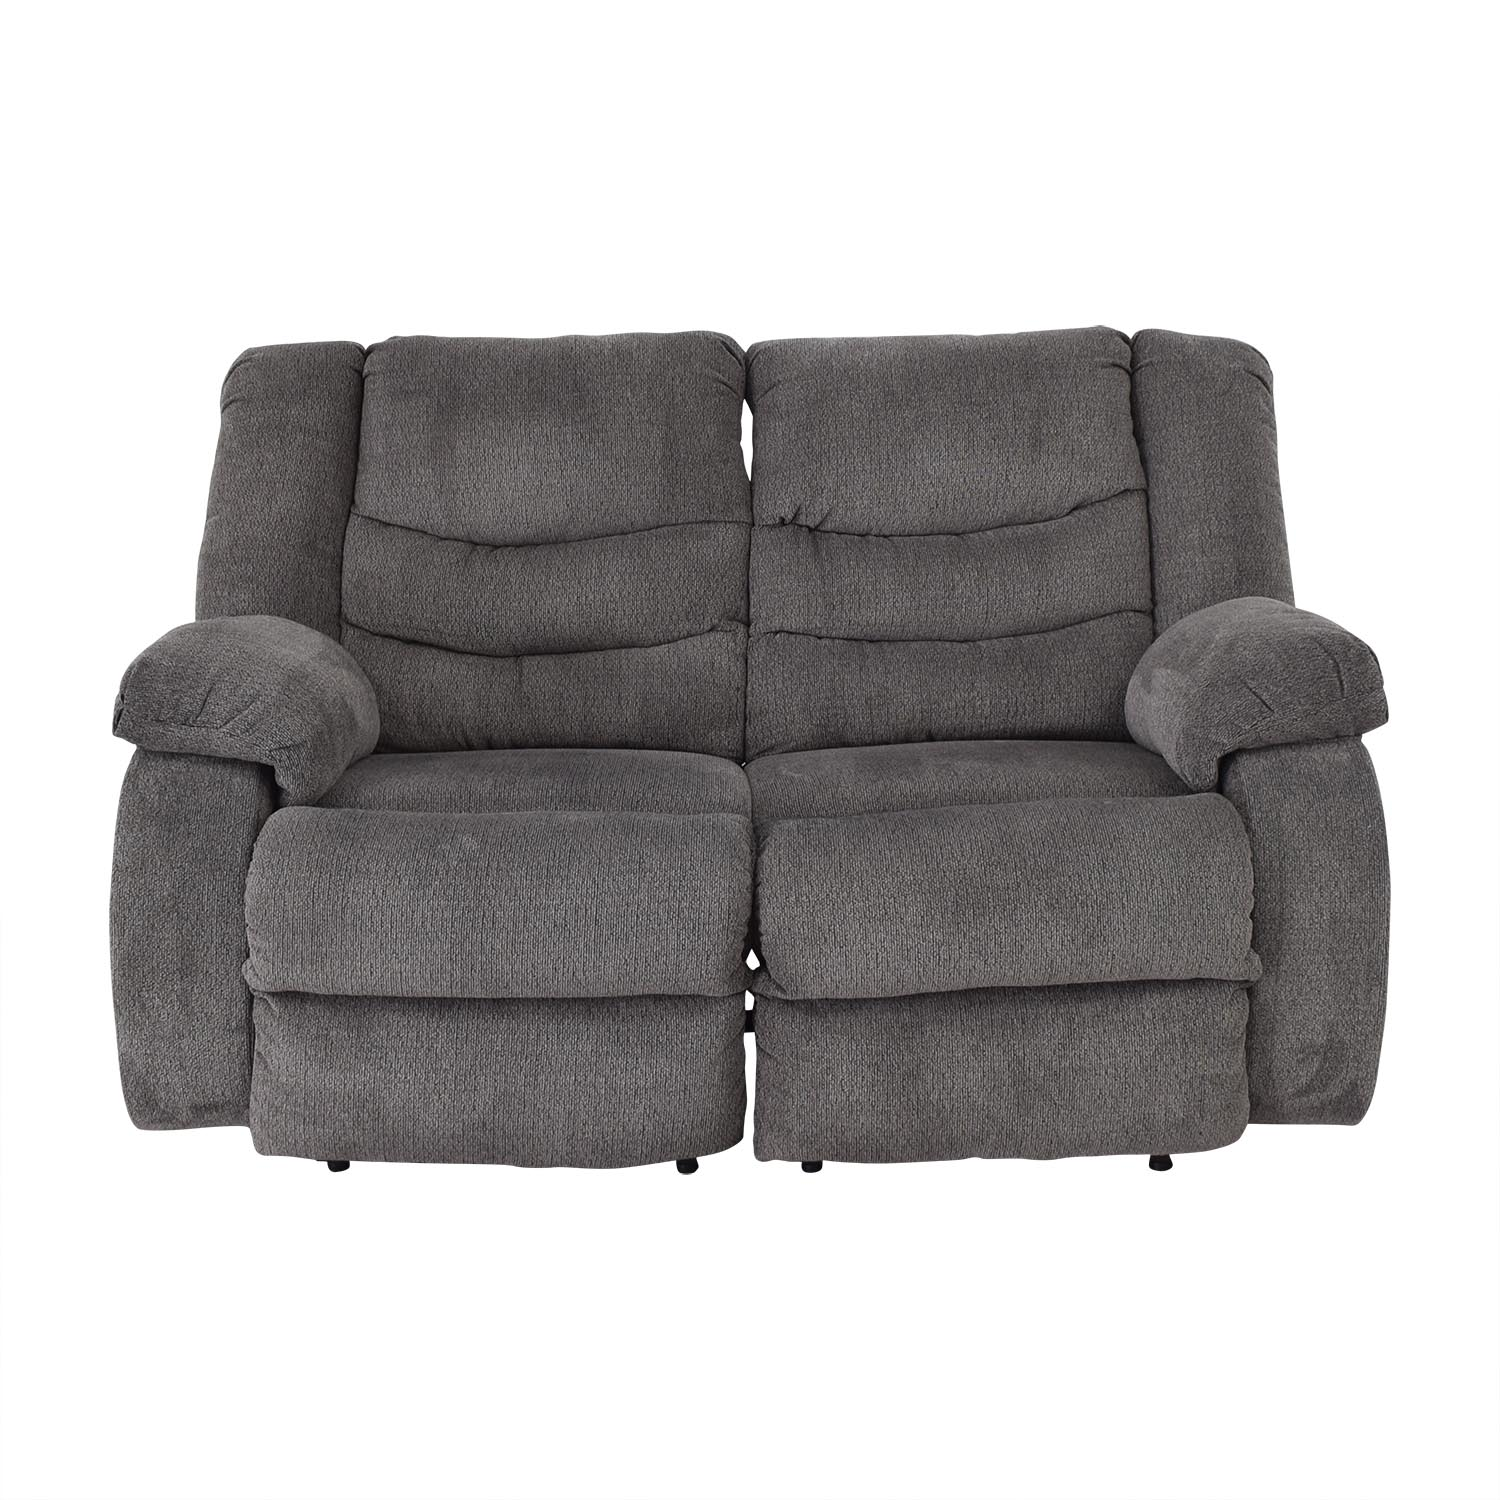 Ashley Furniture Ashley Furniture Gray Reclining Loveseat price